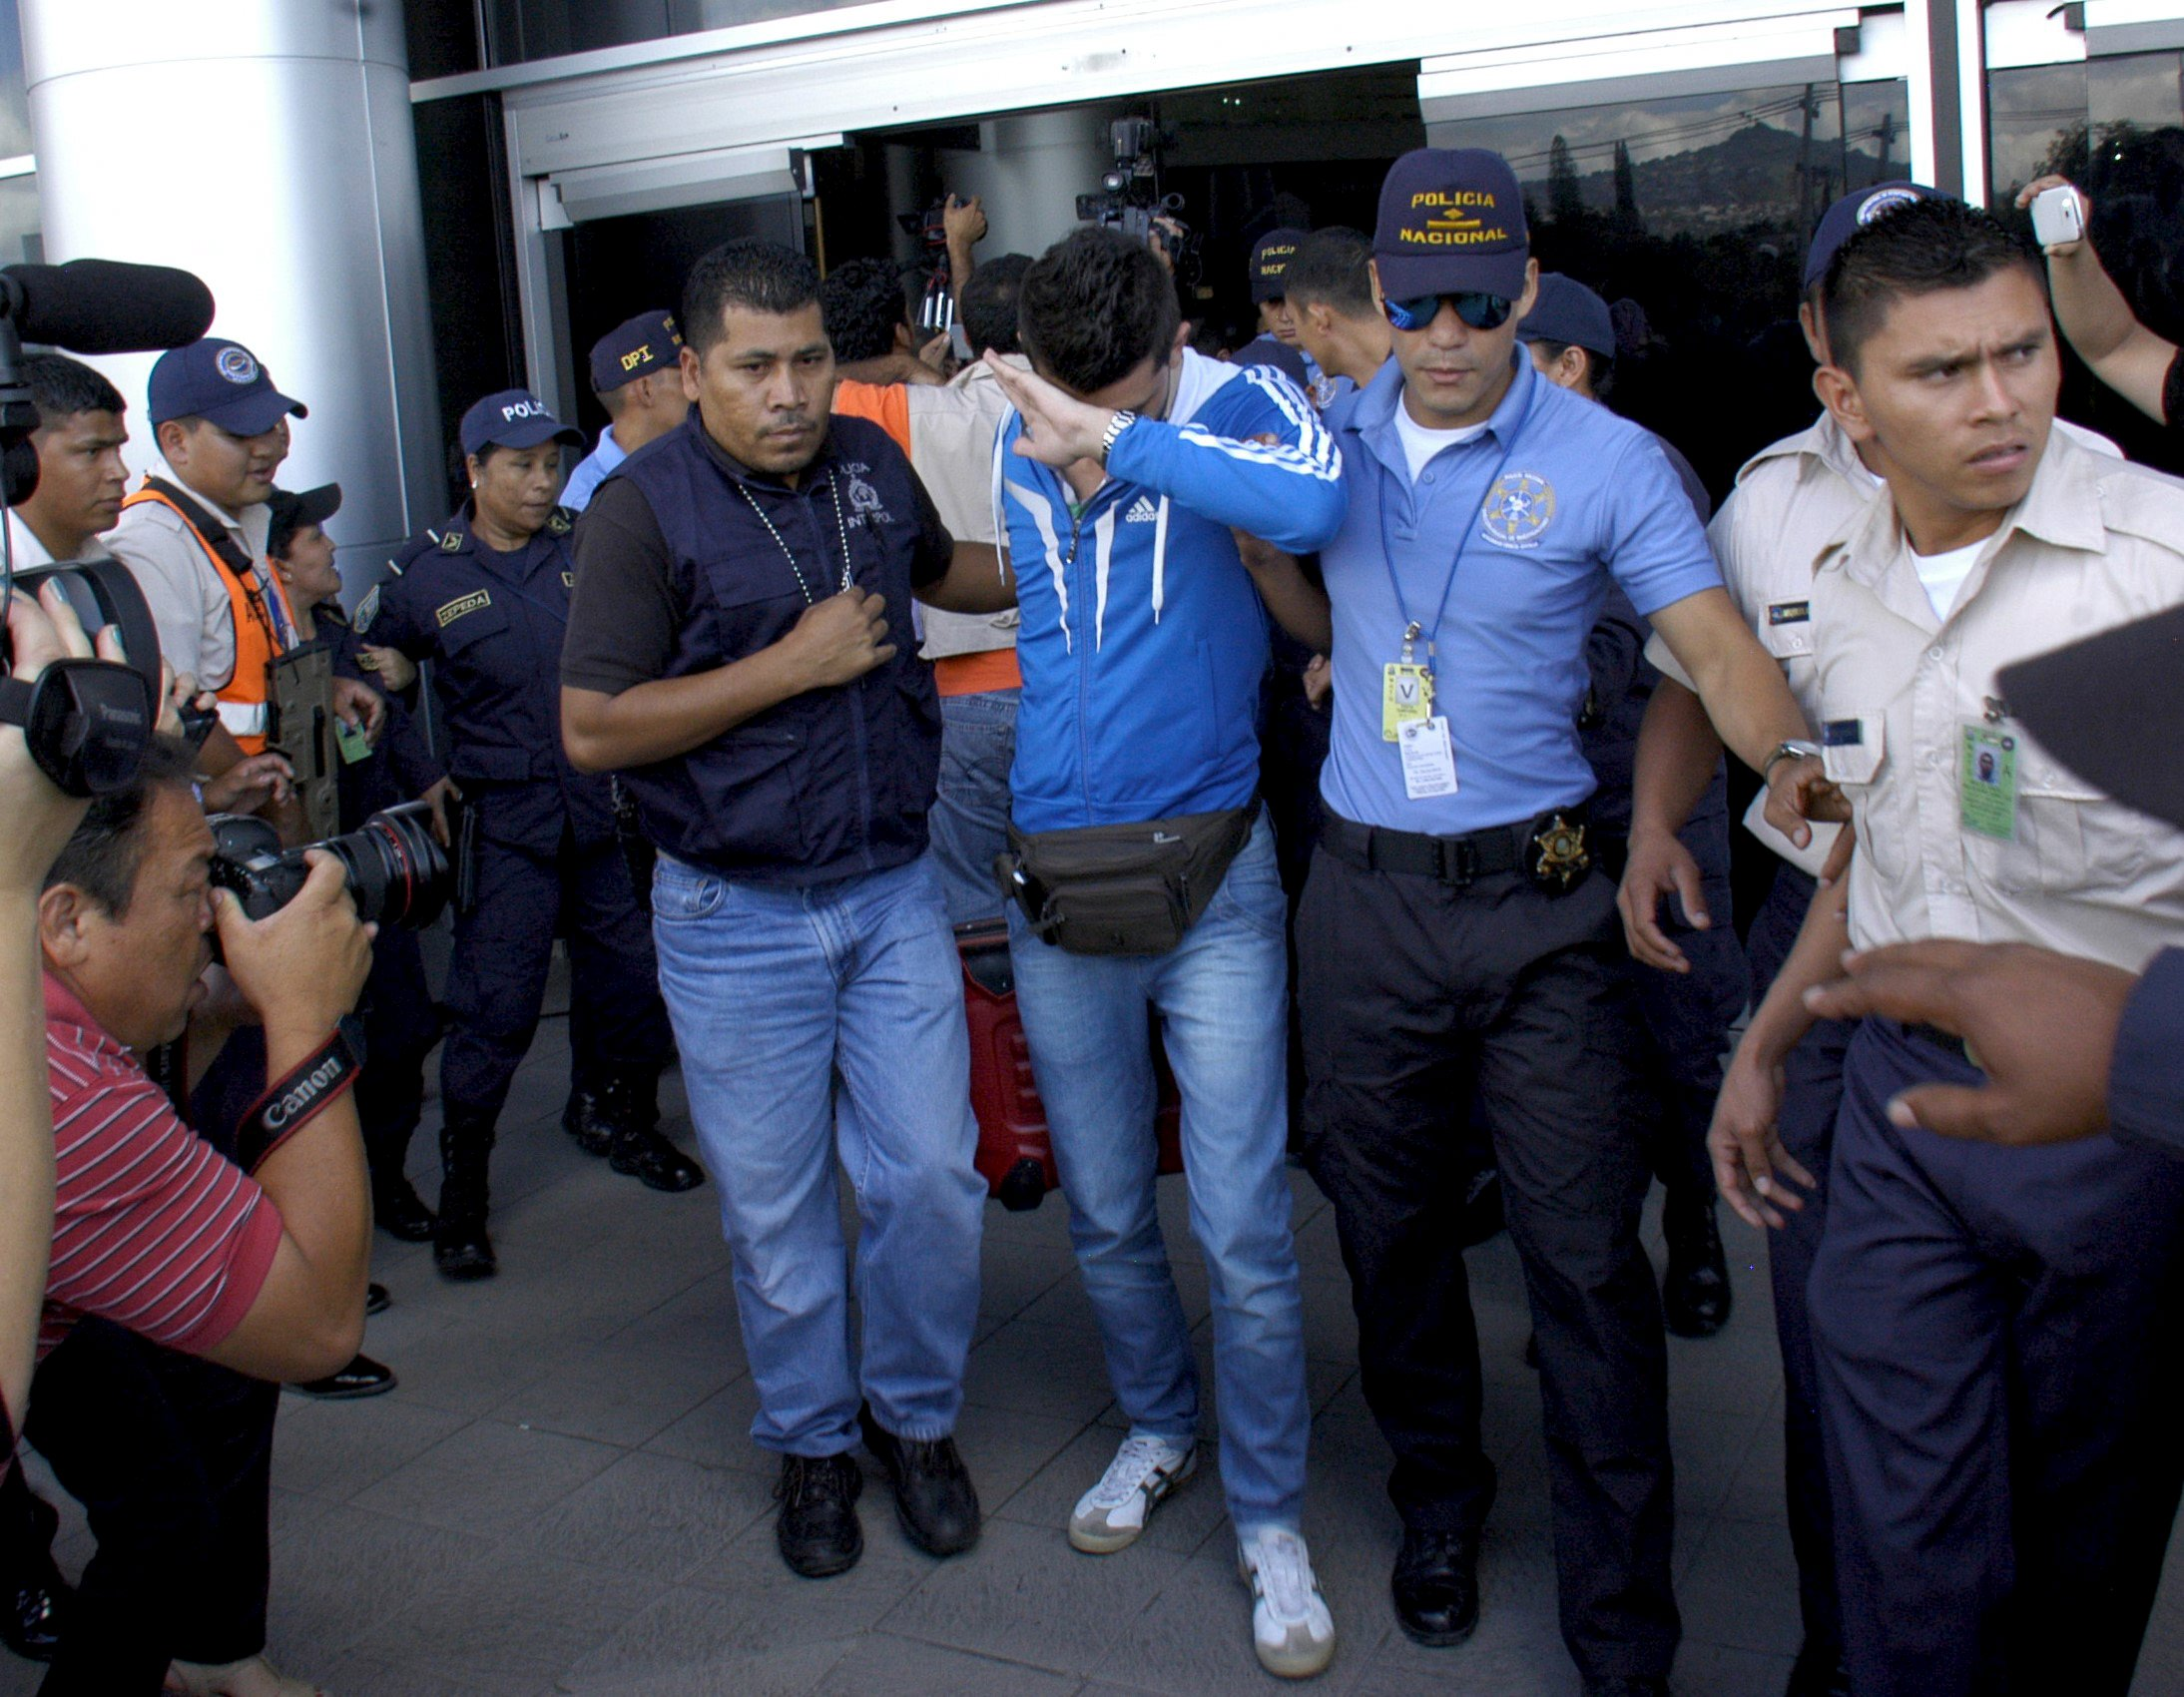 Honduras: Detained Syrians were seeking refuge in U.S.